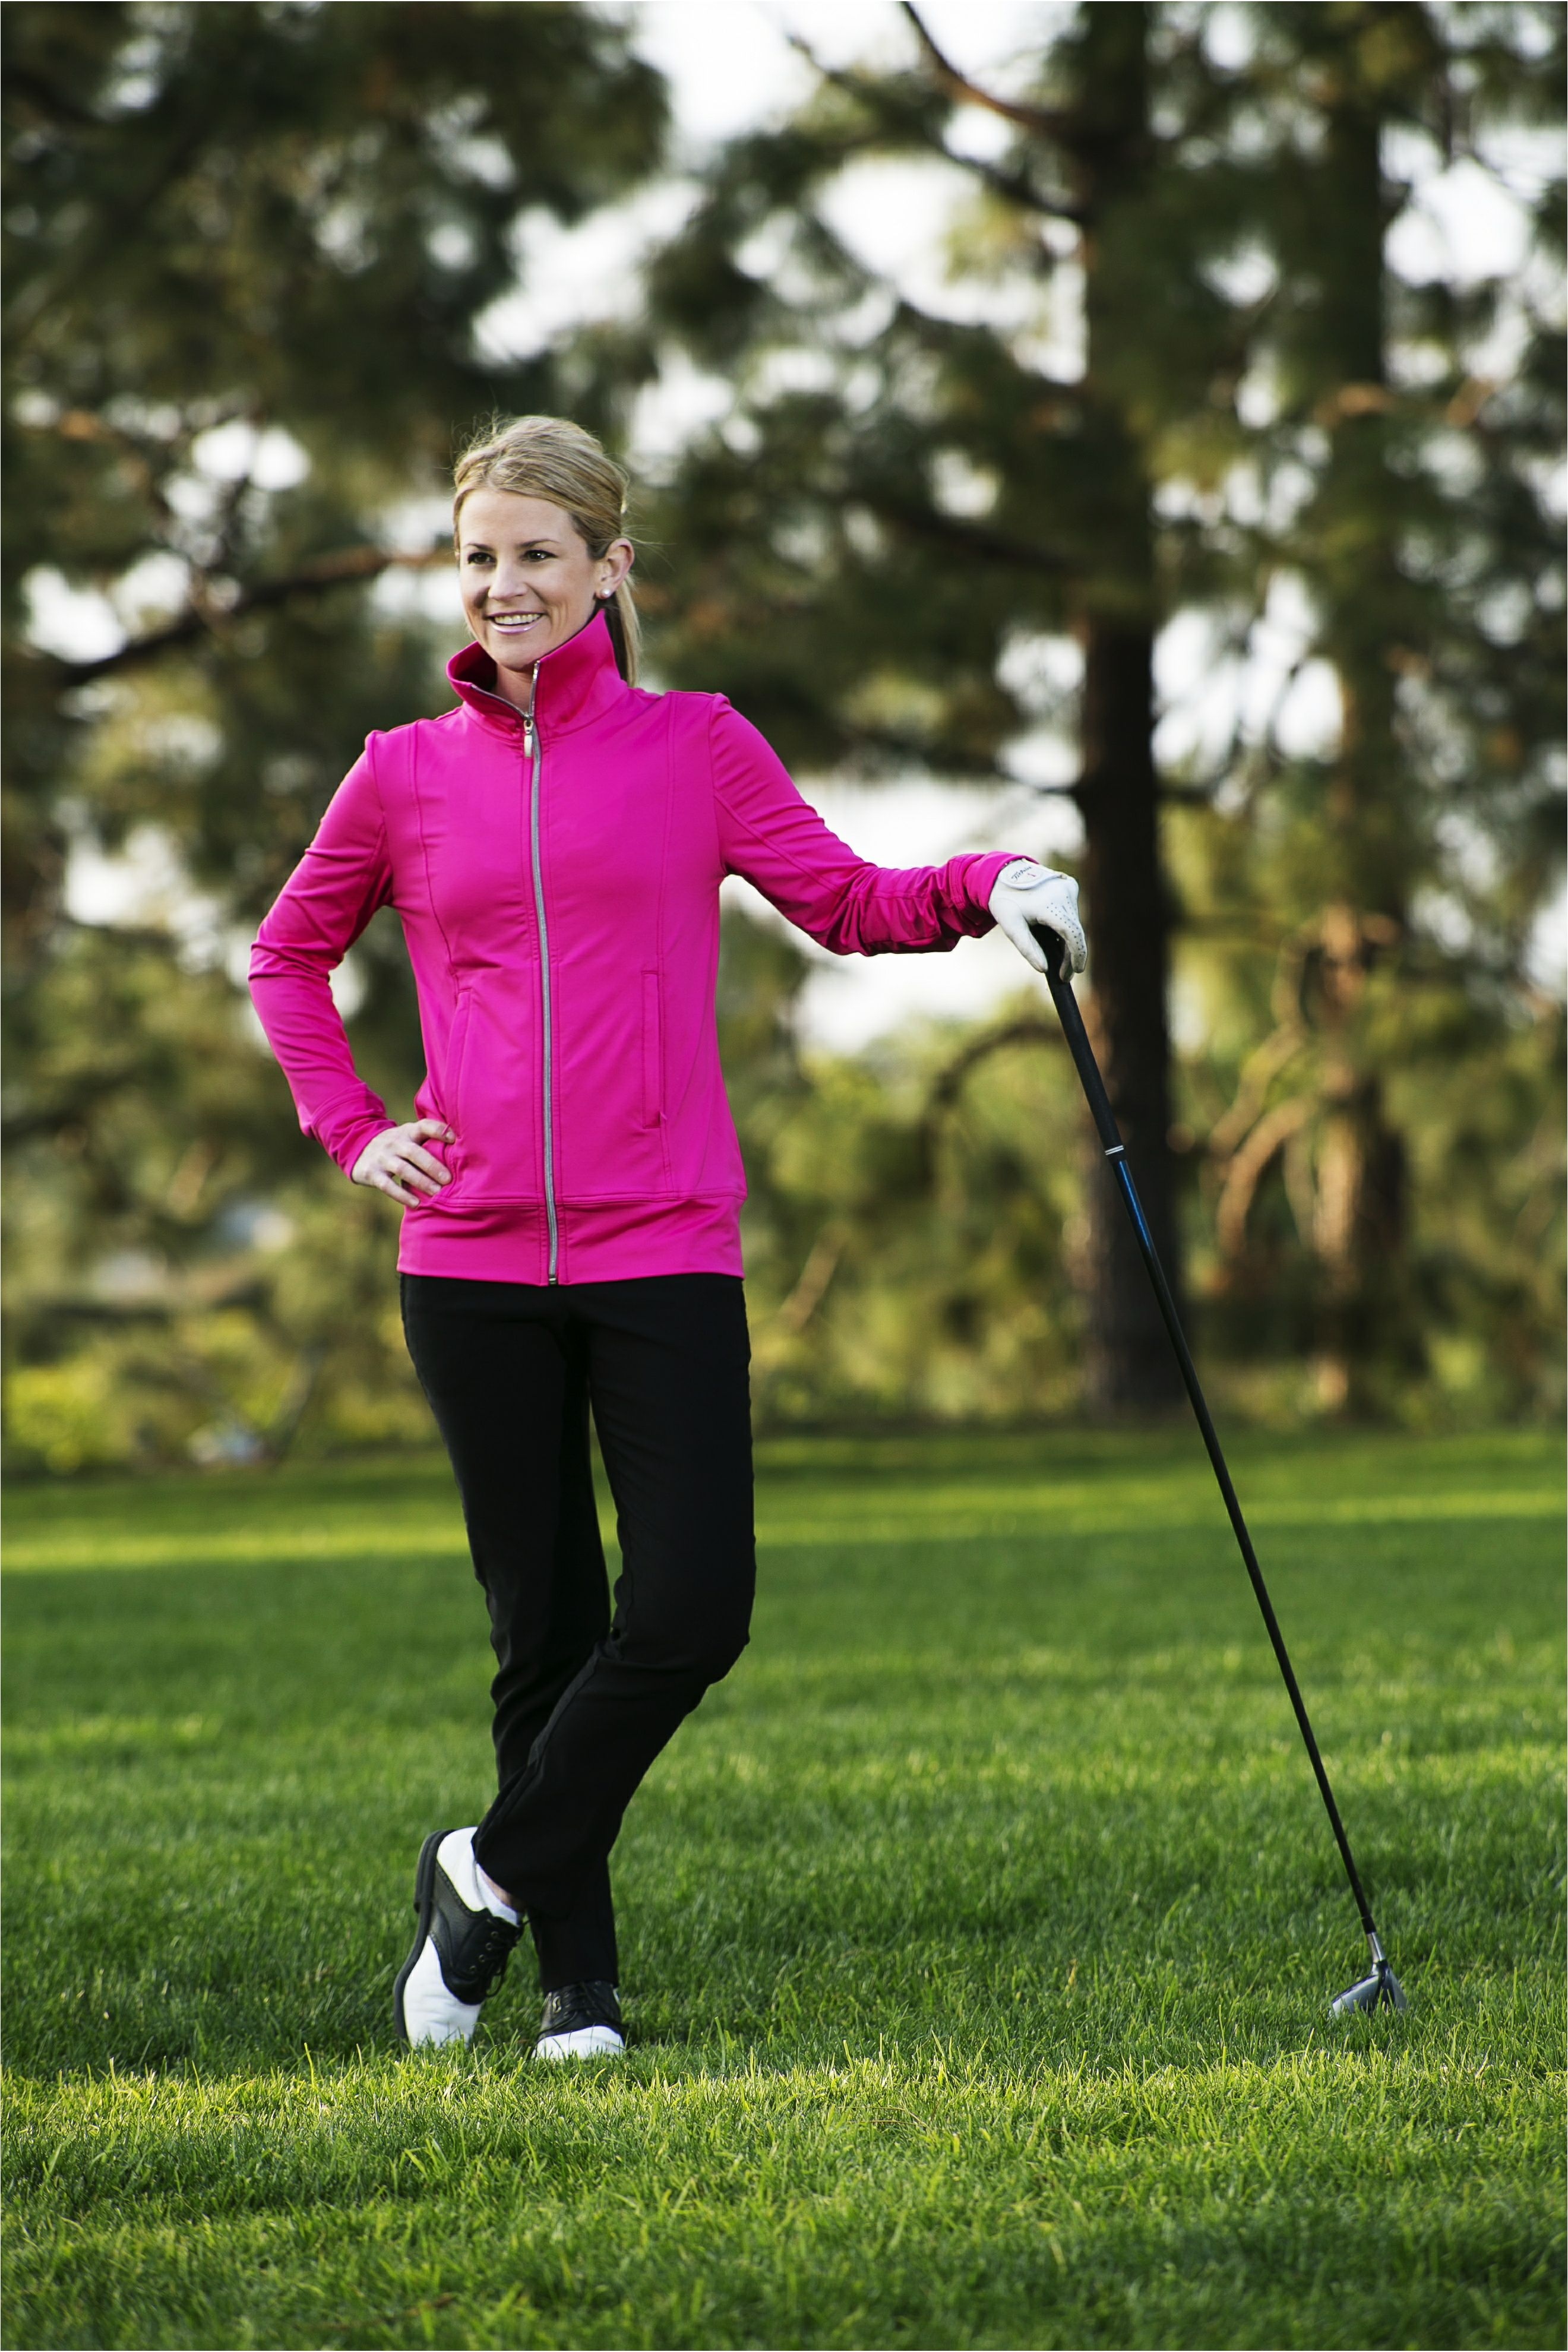 Womens Golf Attire Ideas For Any Weather